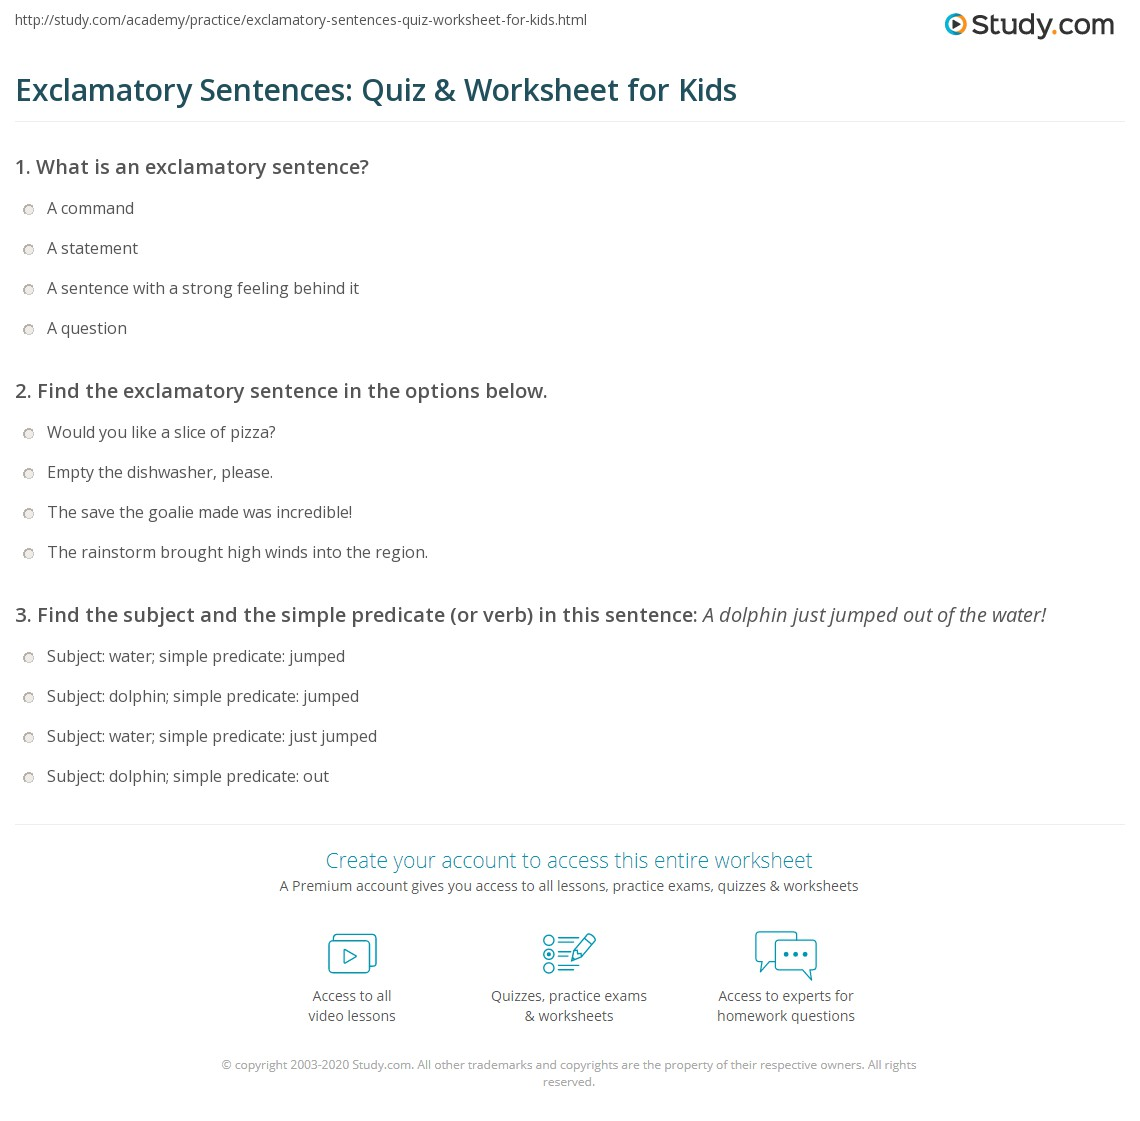 exclamatory sentences quiz worksheet for kids. Black Bedroom Furniture Sets. Home Design Ideas